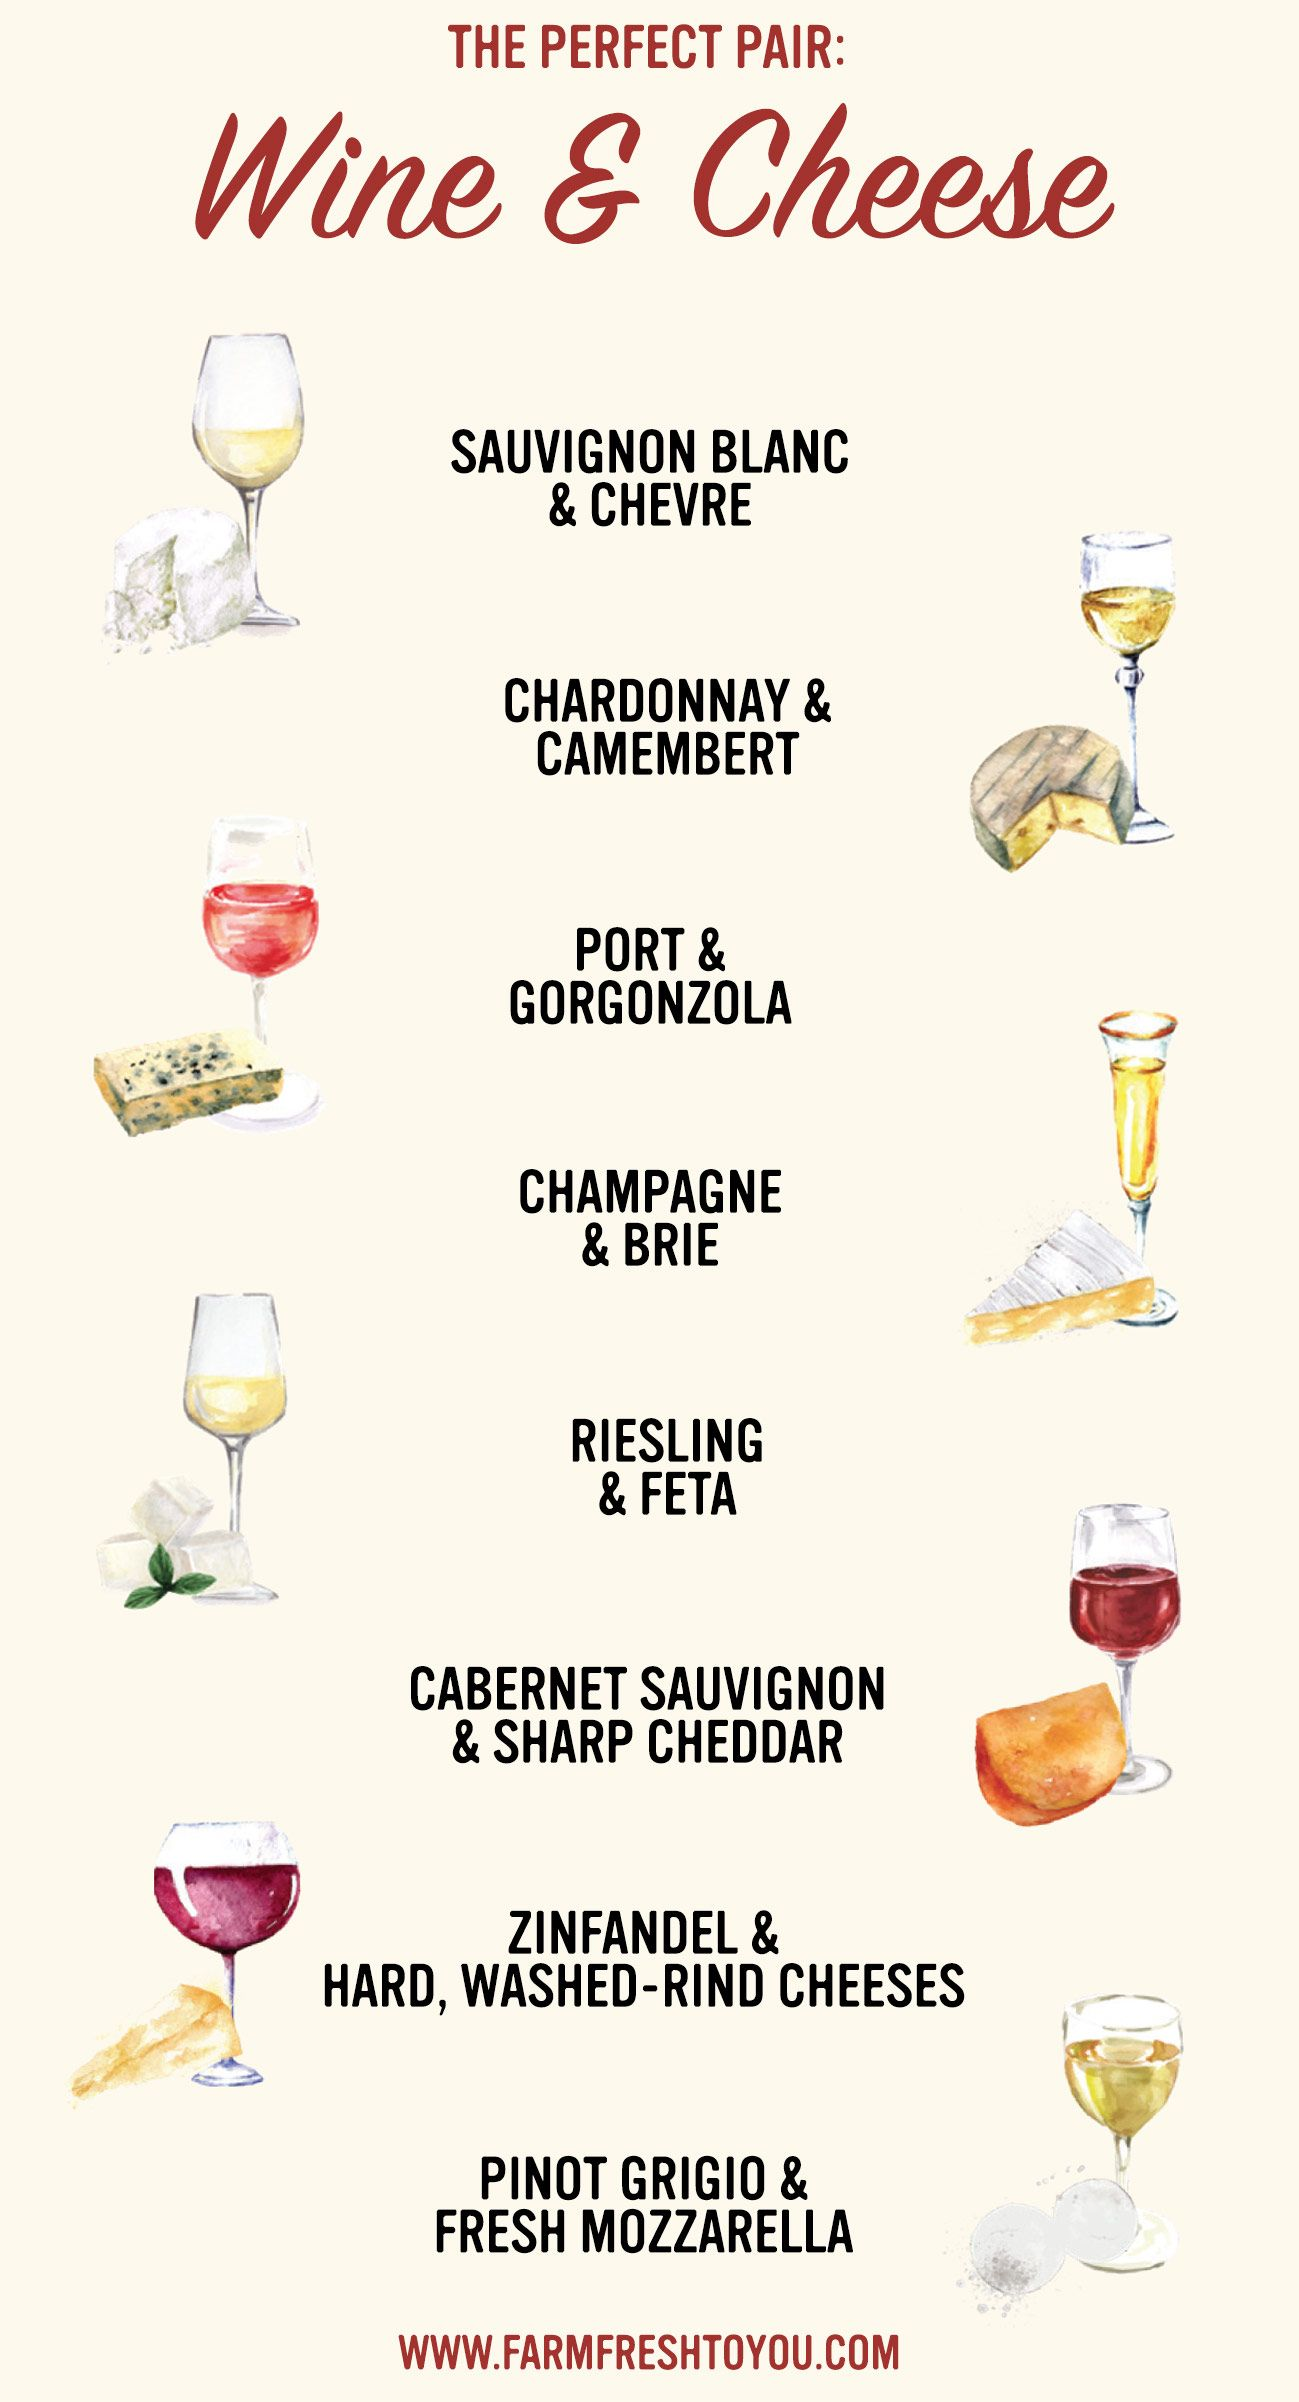 With these simple tips, you will feel like a true sommelier at your next gathering. Pairing wine and cheese has never been so fun and easy! #wine #cheese #pairings #fall #fallrecipes We deliver organic produce and farm products from local farms conveniently to your doorstep. Use promo code PIN40 for $10 off your first 4 boxes.